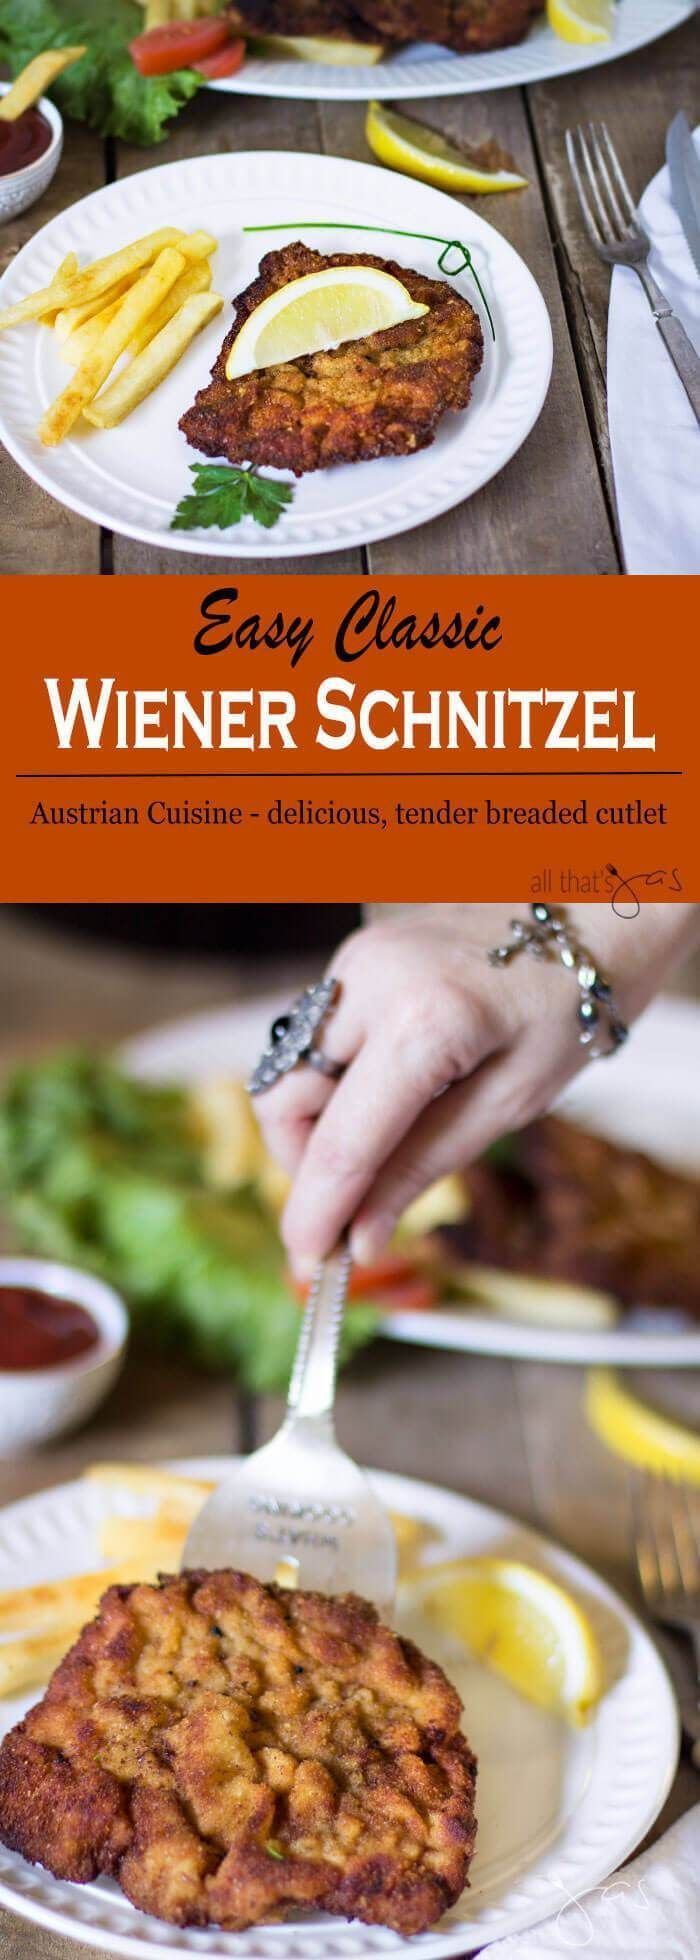 Easy and quick Wiener schnitzel is breaded cutlet of veal or pork served with French fries and lemon wedge that the whole family will love